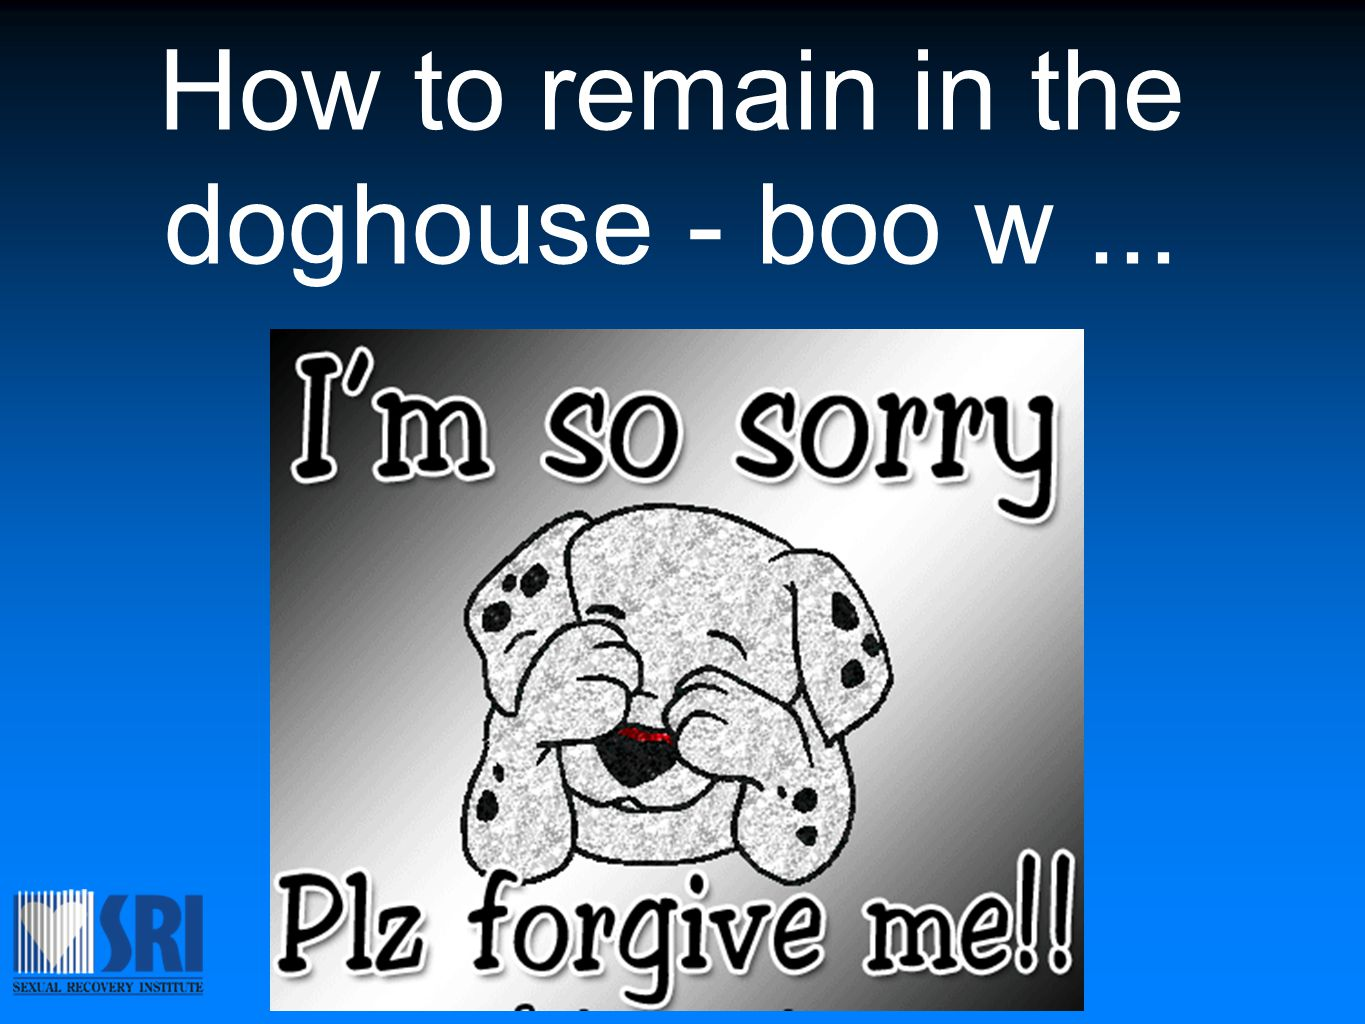 How to remain in the doghouse - boo w...